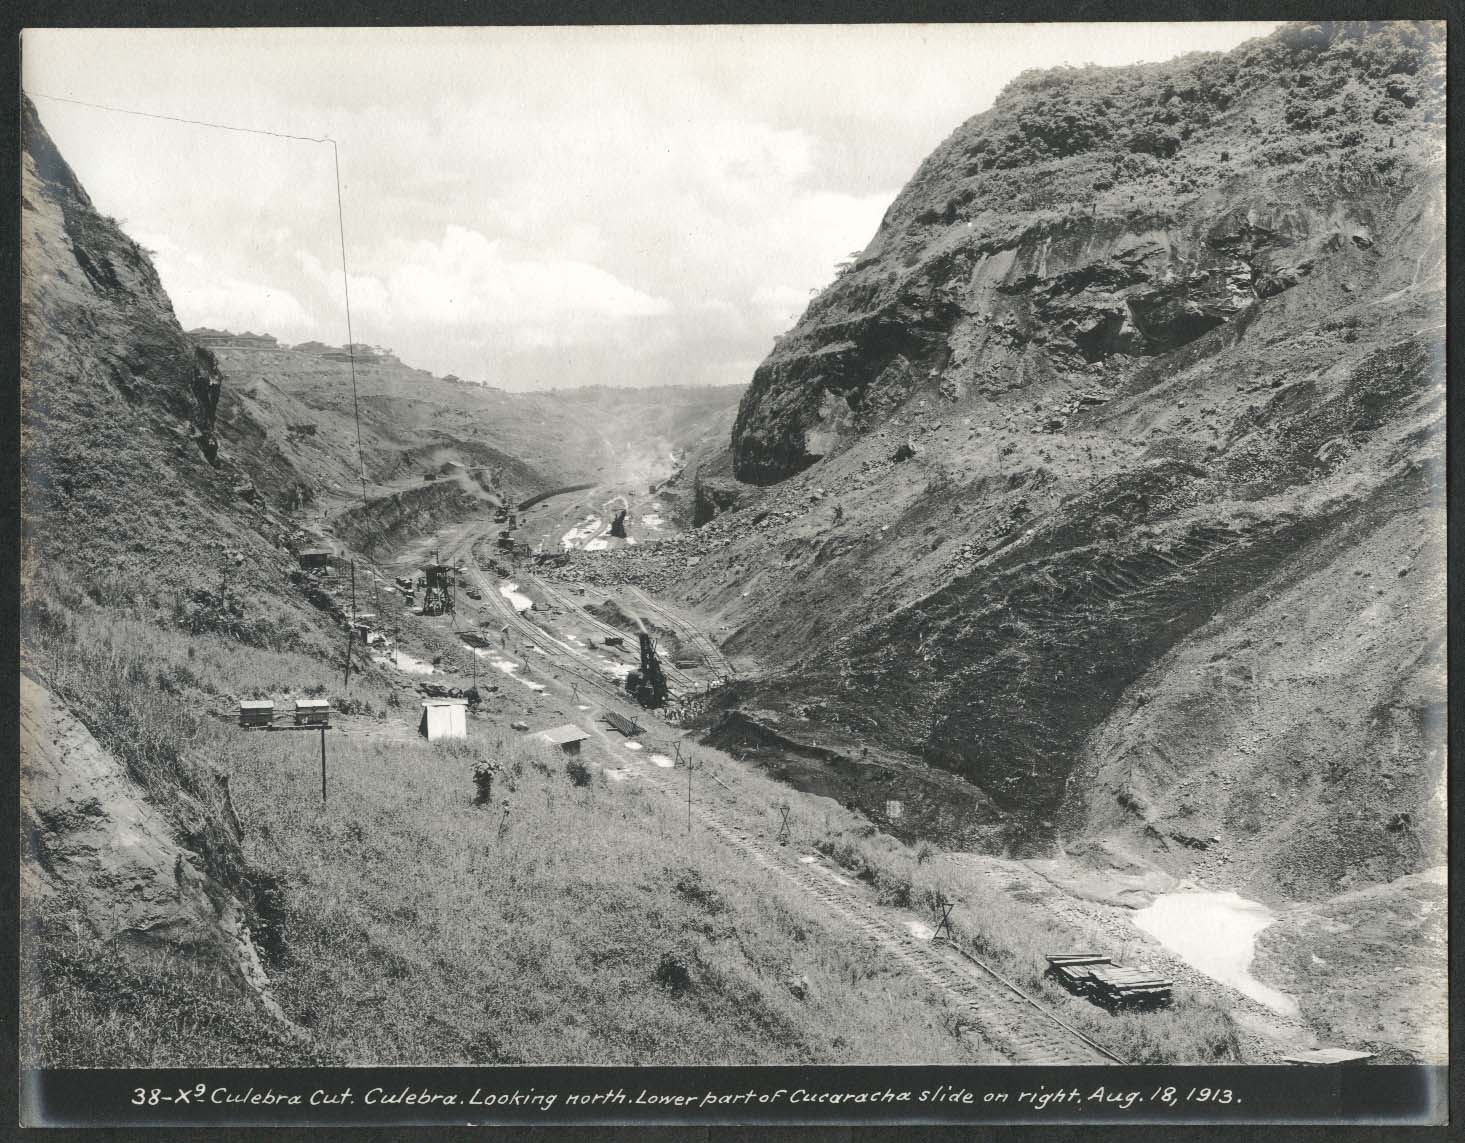 Image for Panama Canal photo 1913 Culebra Cut lower part of Cucaracha slide